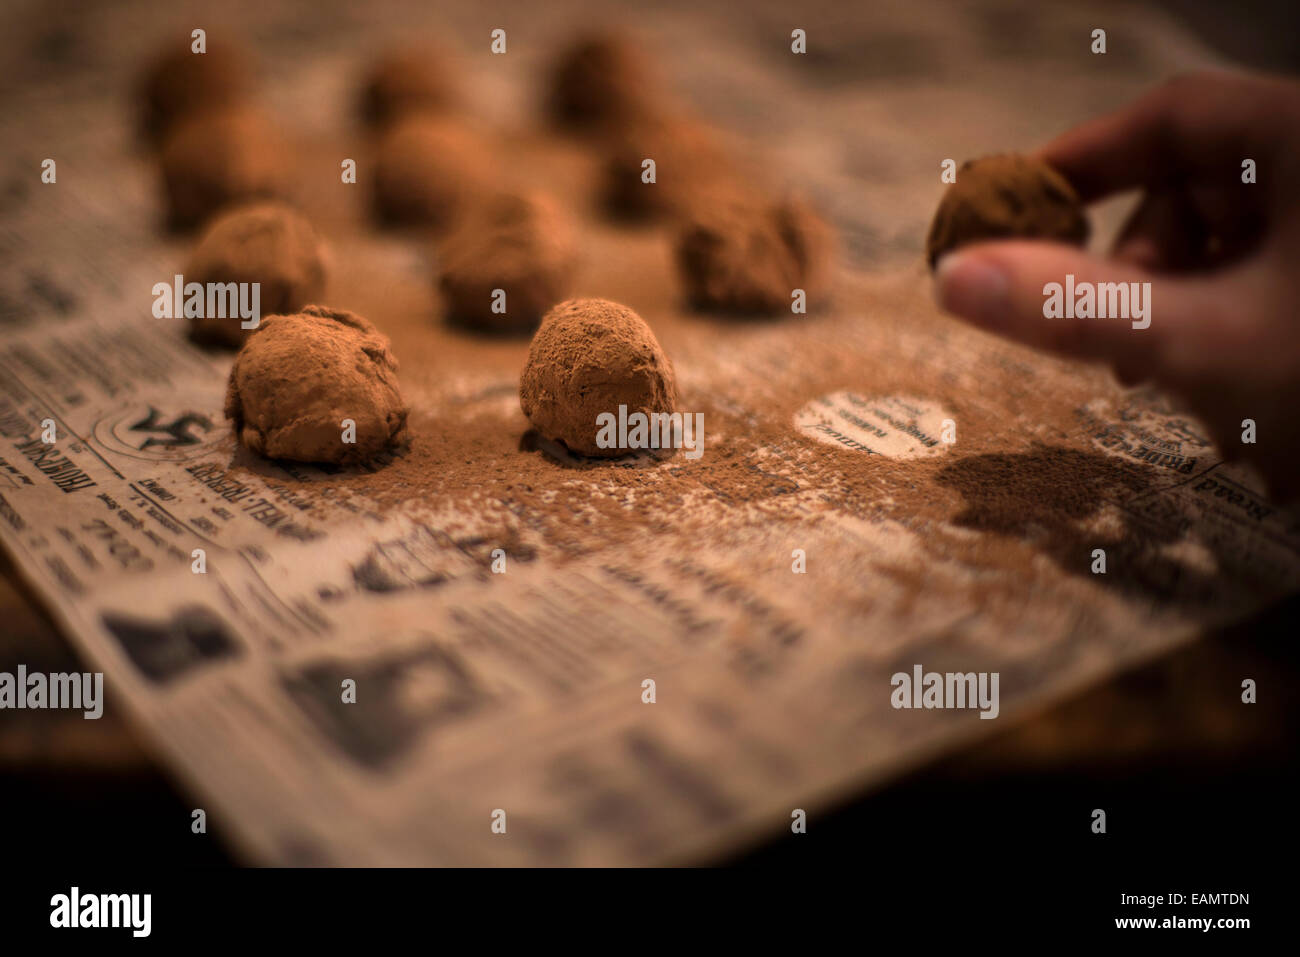 Rows of chocolate truffles dusted with cocoa powder on antique newspaper and rustic wood surface. One truffle being - Stock Image